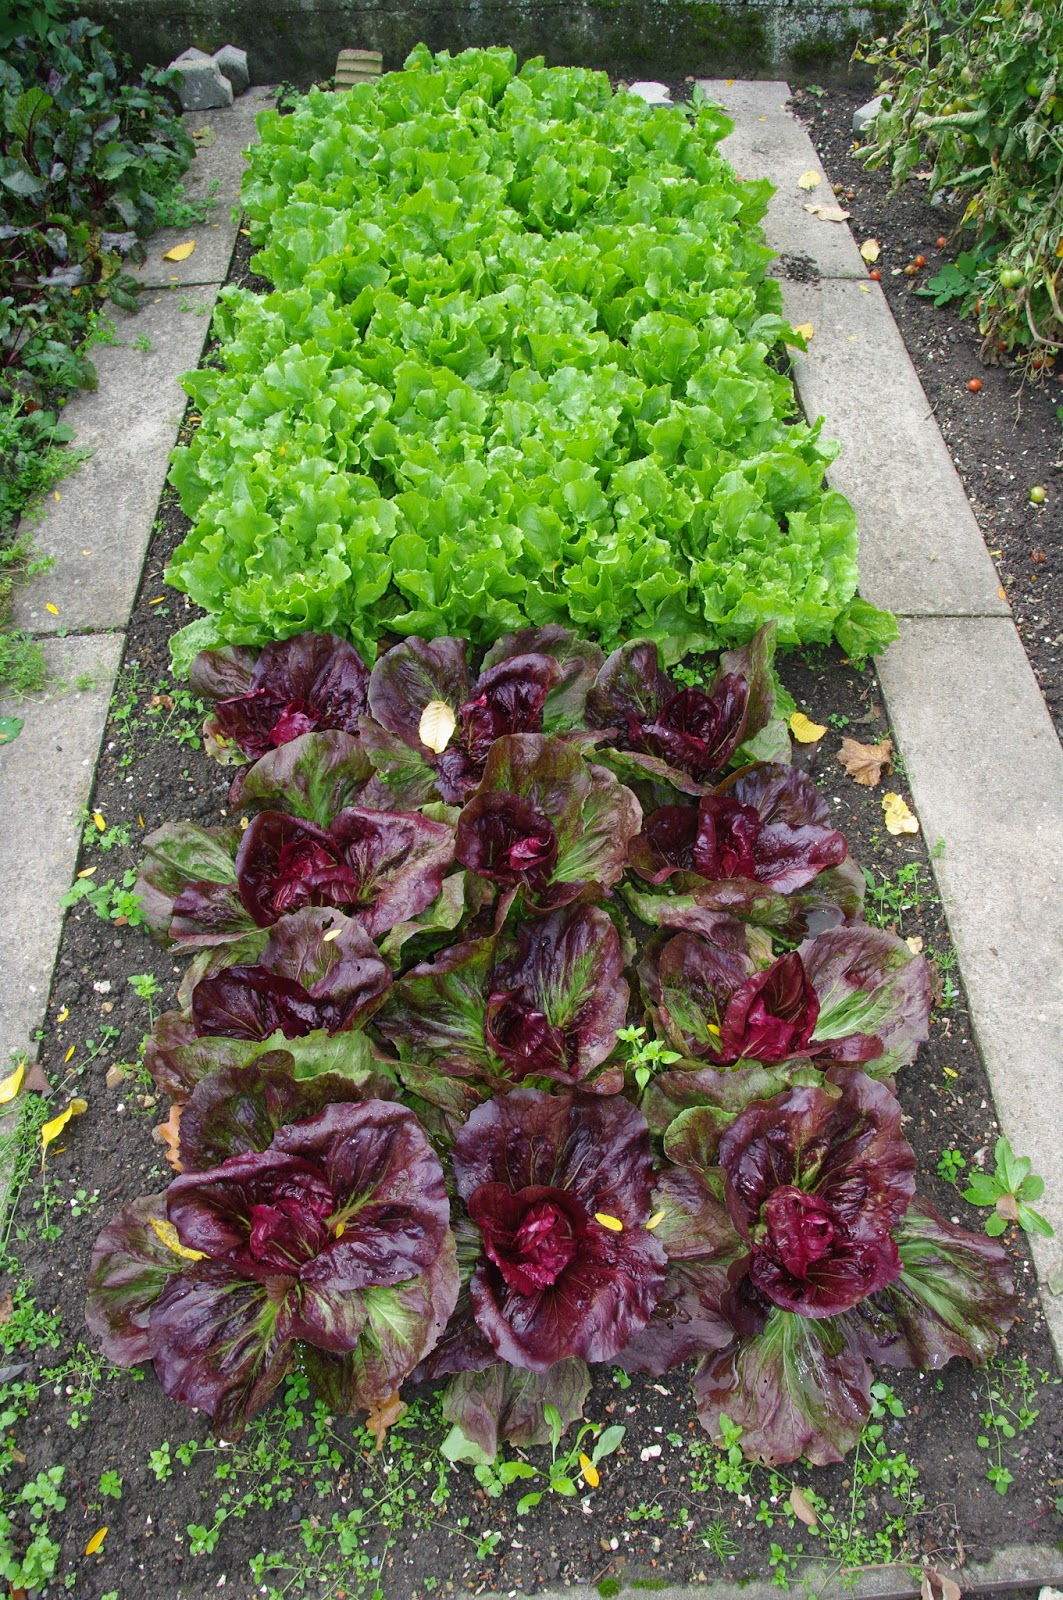 It's Spring! Time to plan a vegetable garden.